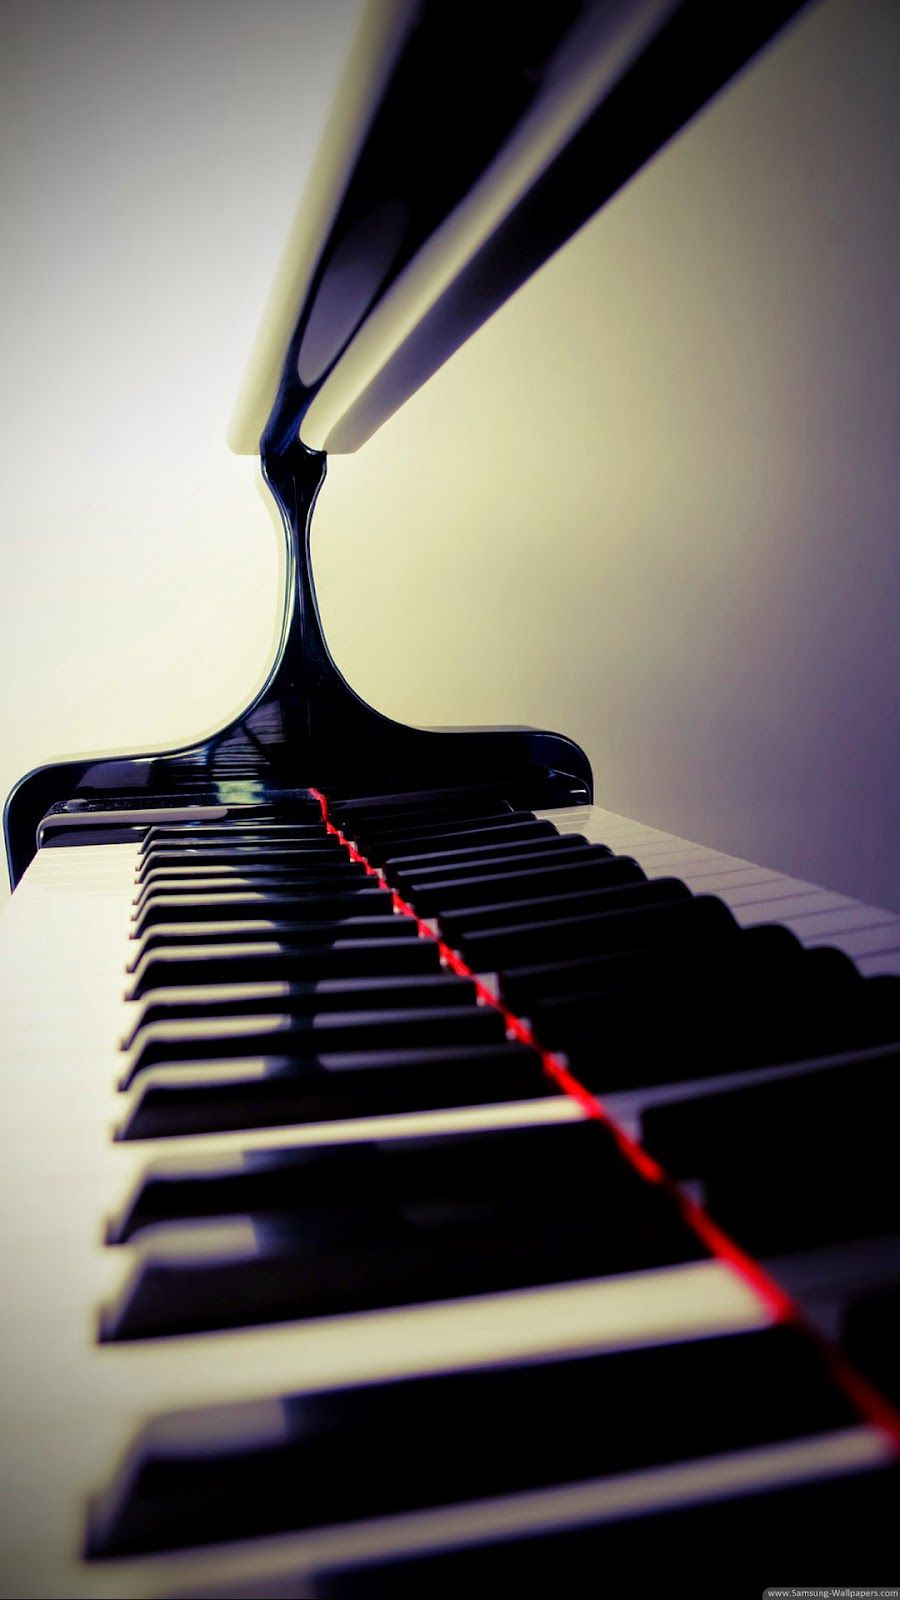 Wallpaper For Iphone 6 Plus Music Keyboard Piano Music Wallpaper Hd wallpaper piano keys macro musical